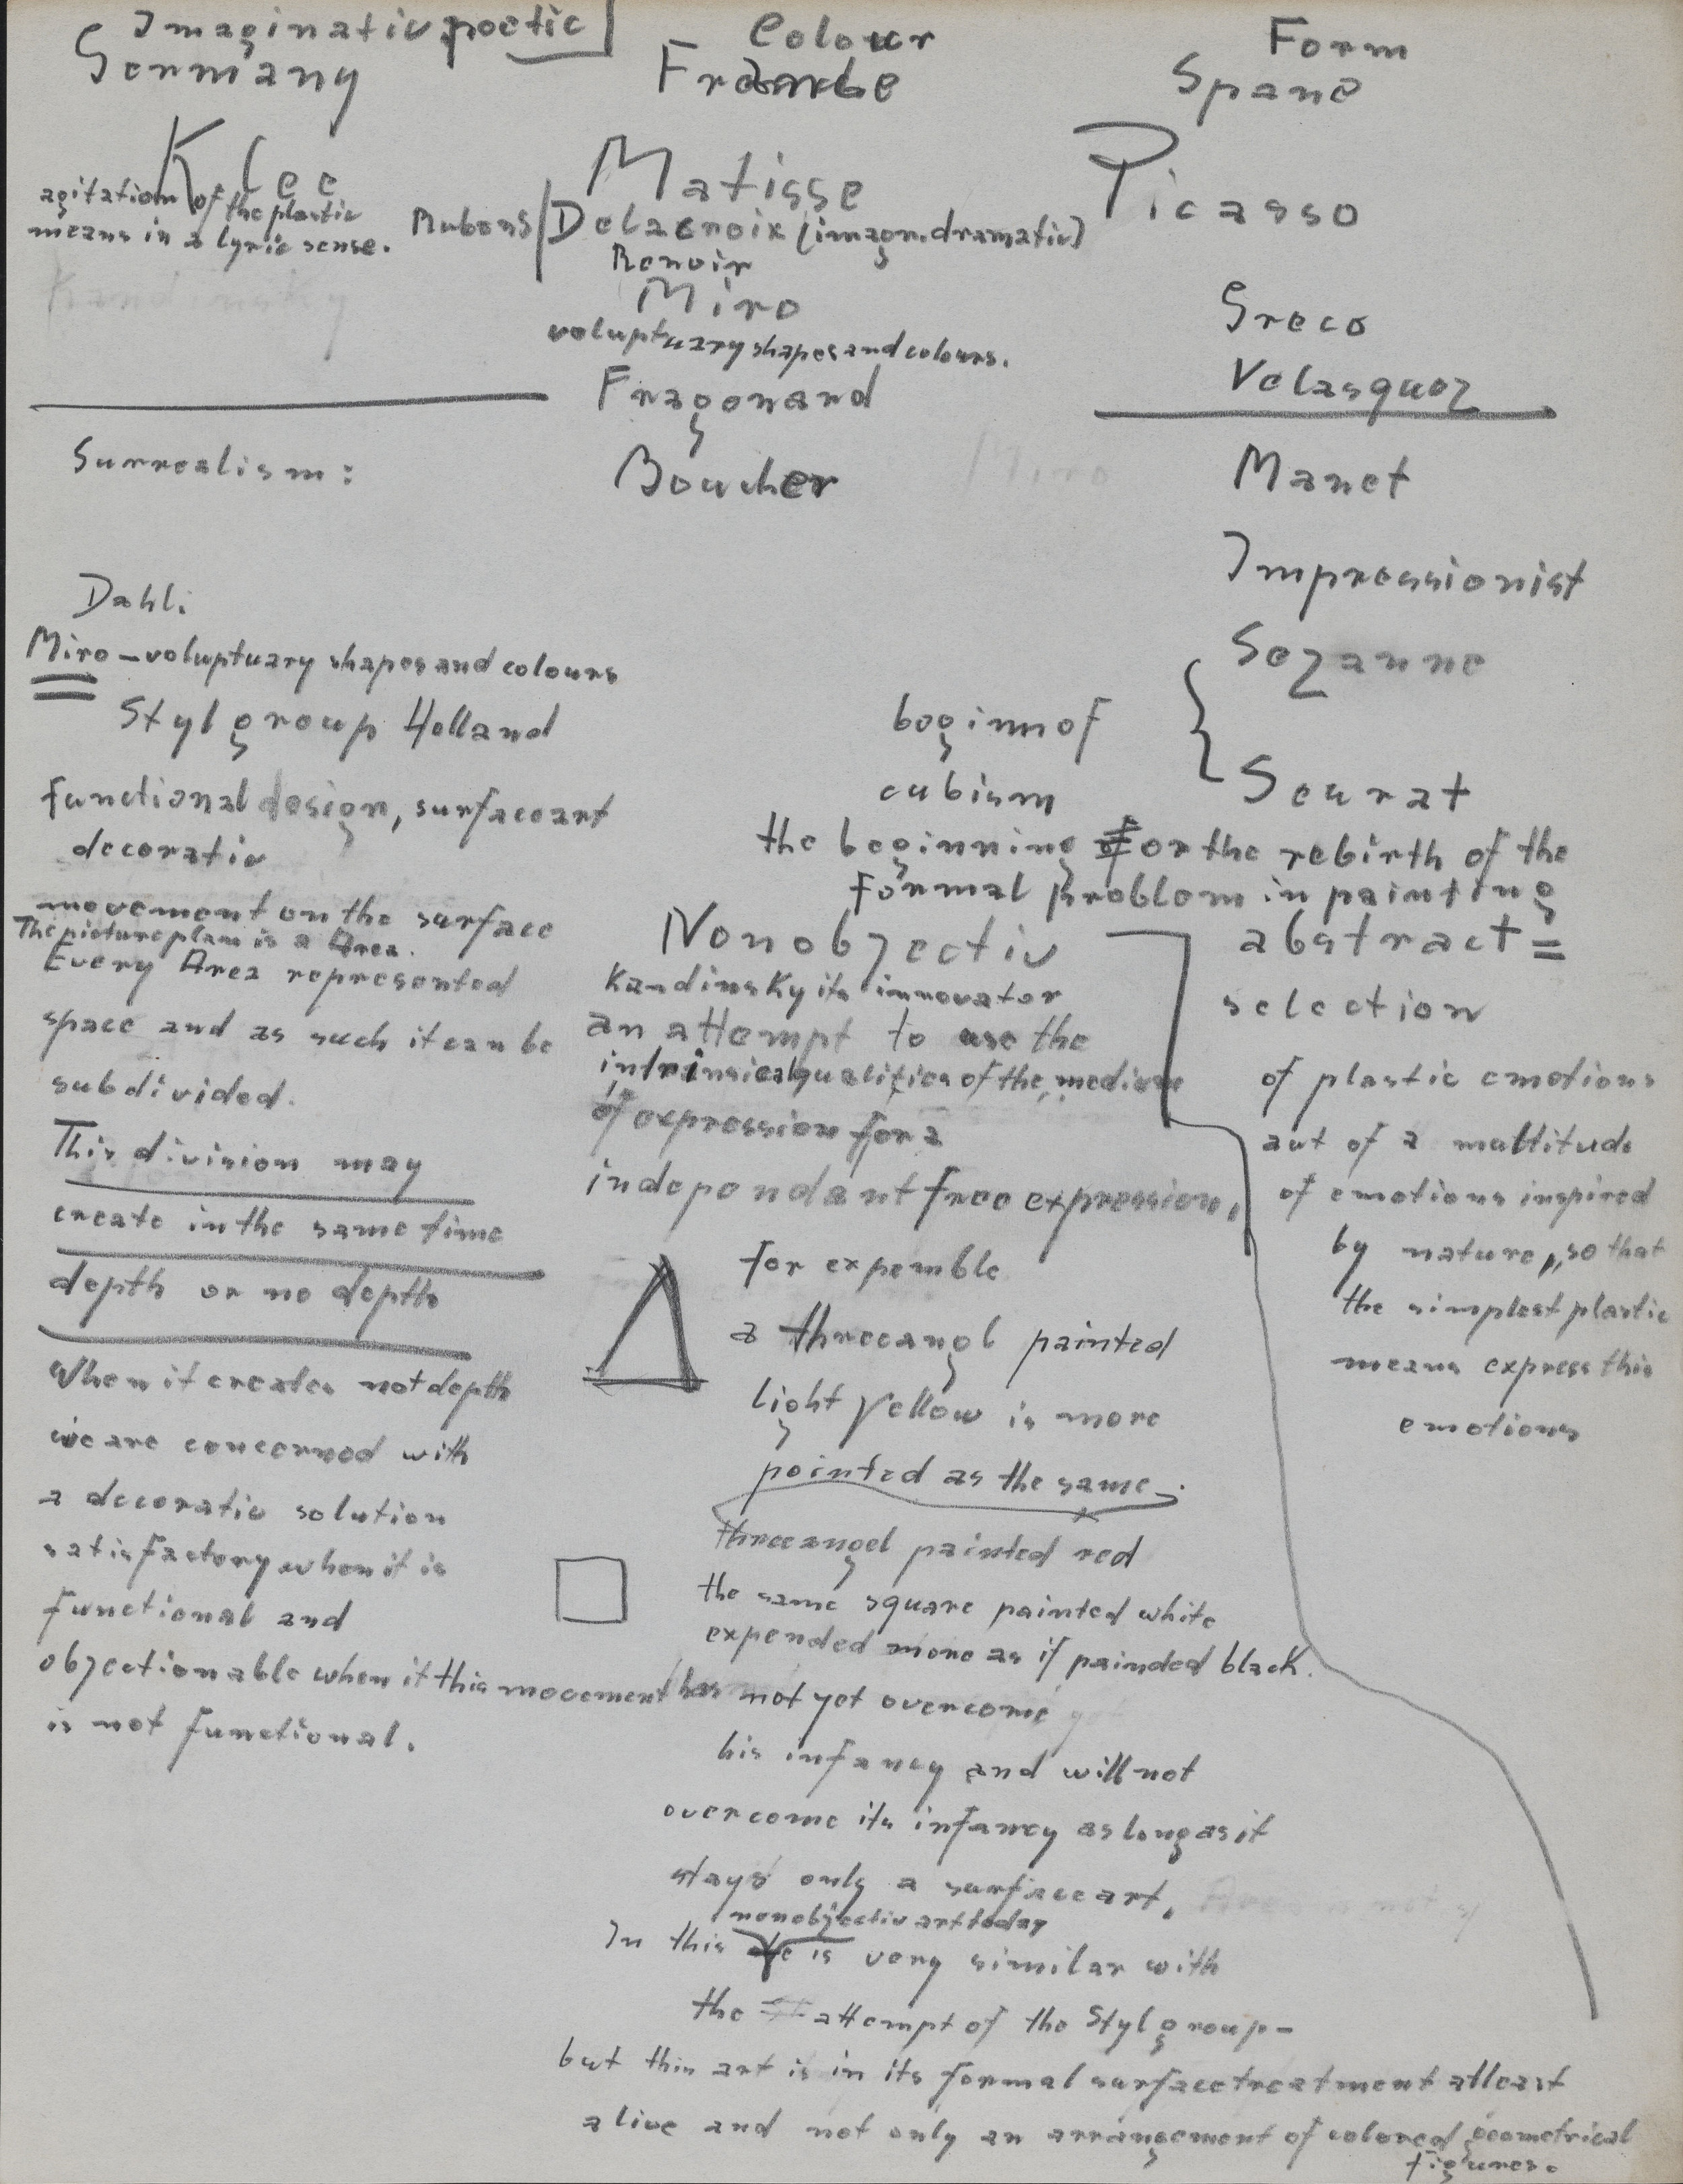 Abb. 1 Hans Hofmann, Provincetown Lectures manuscript »Laws of the Picture Plane« and »Tensions«, S. 34, Hans Hofmann papers, [circa 1904]-2011, bulk 1945-2000. Archives of American Art, Smithsonian Institution, ©Artists Rights Society (ARS)